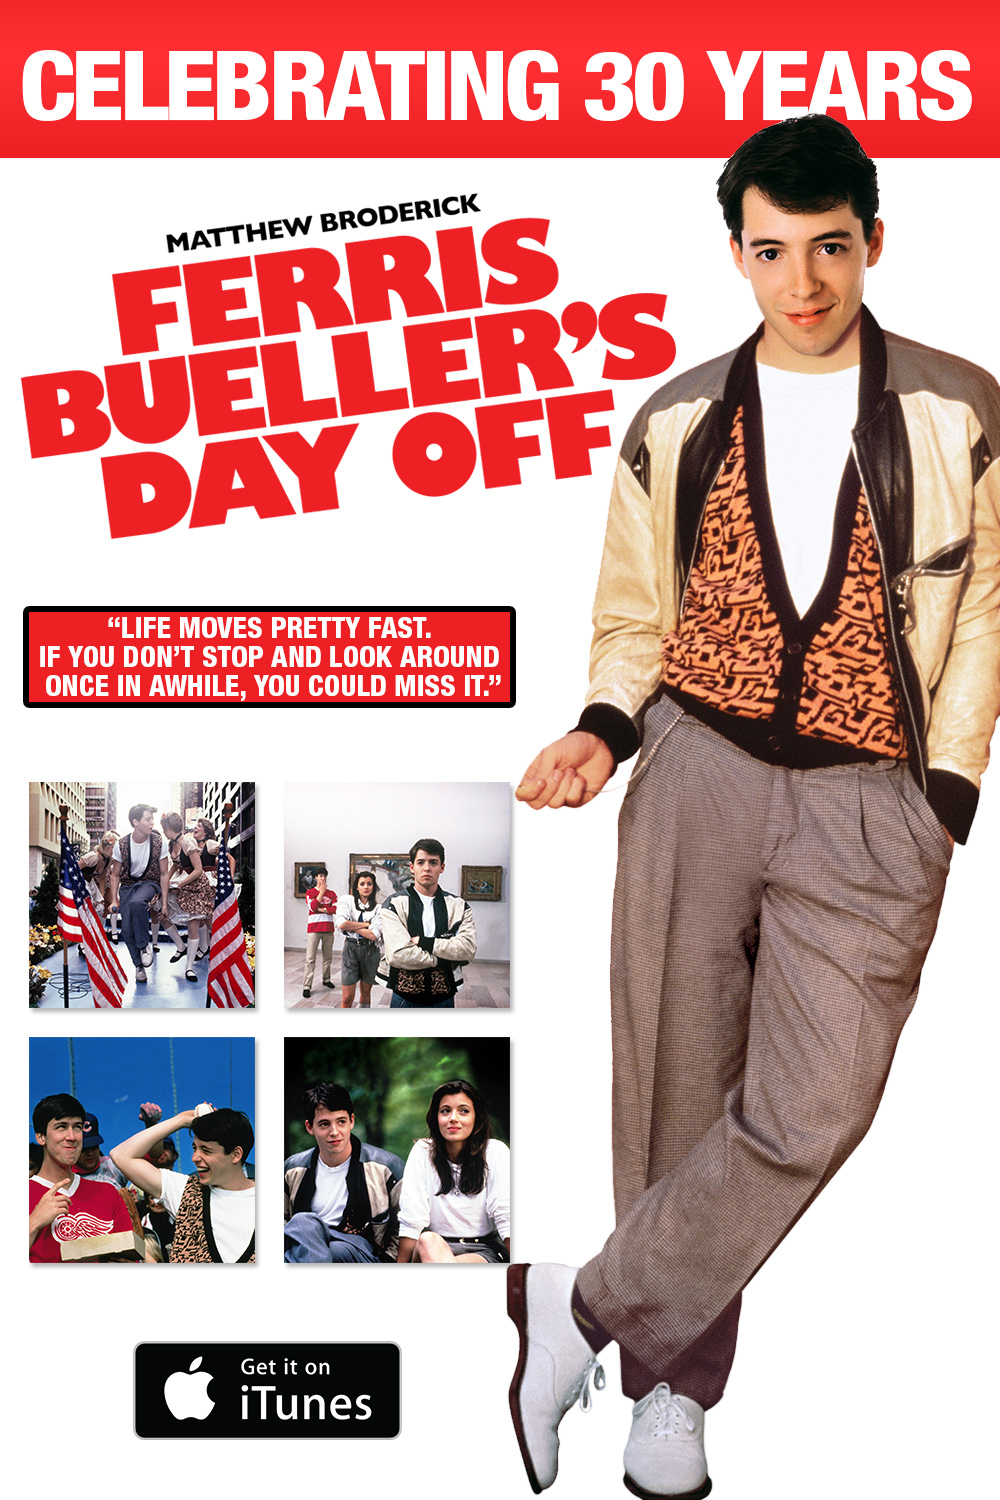 a1bfd2ca132 Once Upon a Twilight!  Ferris Bueller s Day Off- 30th Anniversary ...